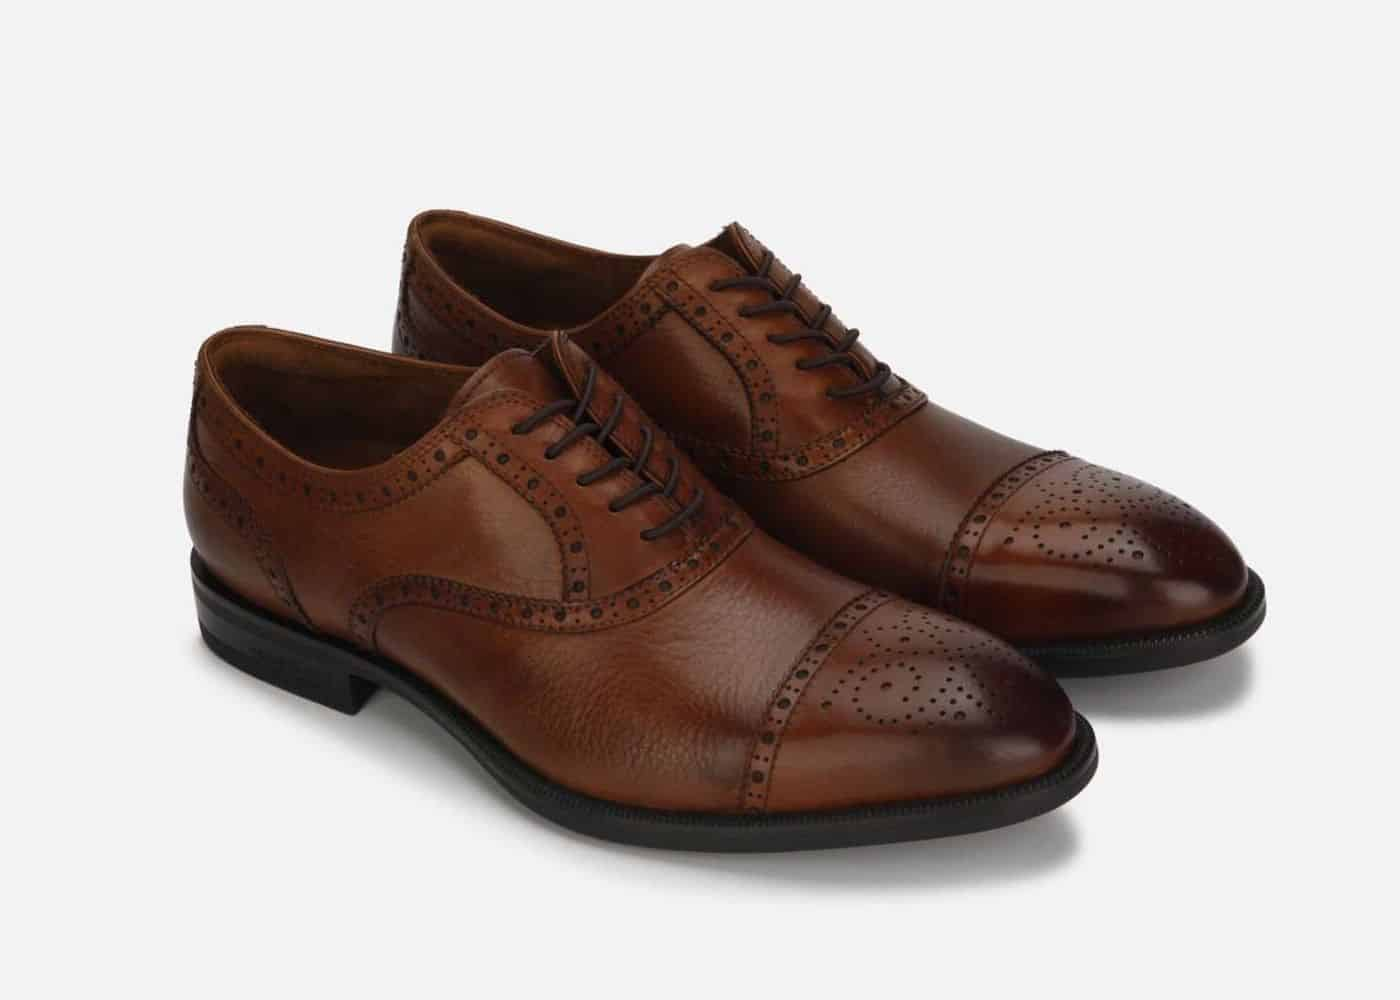 Kenneth Cole oxford shoes